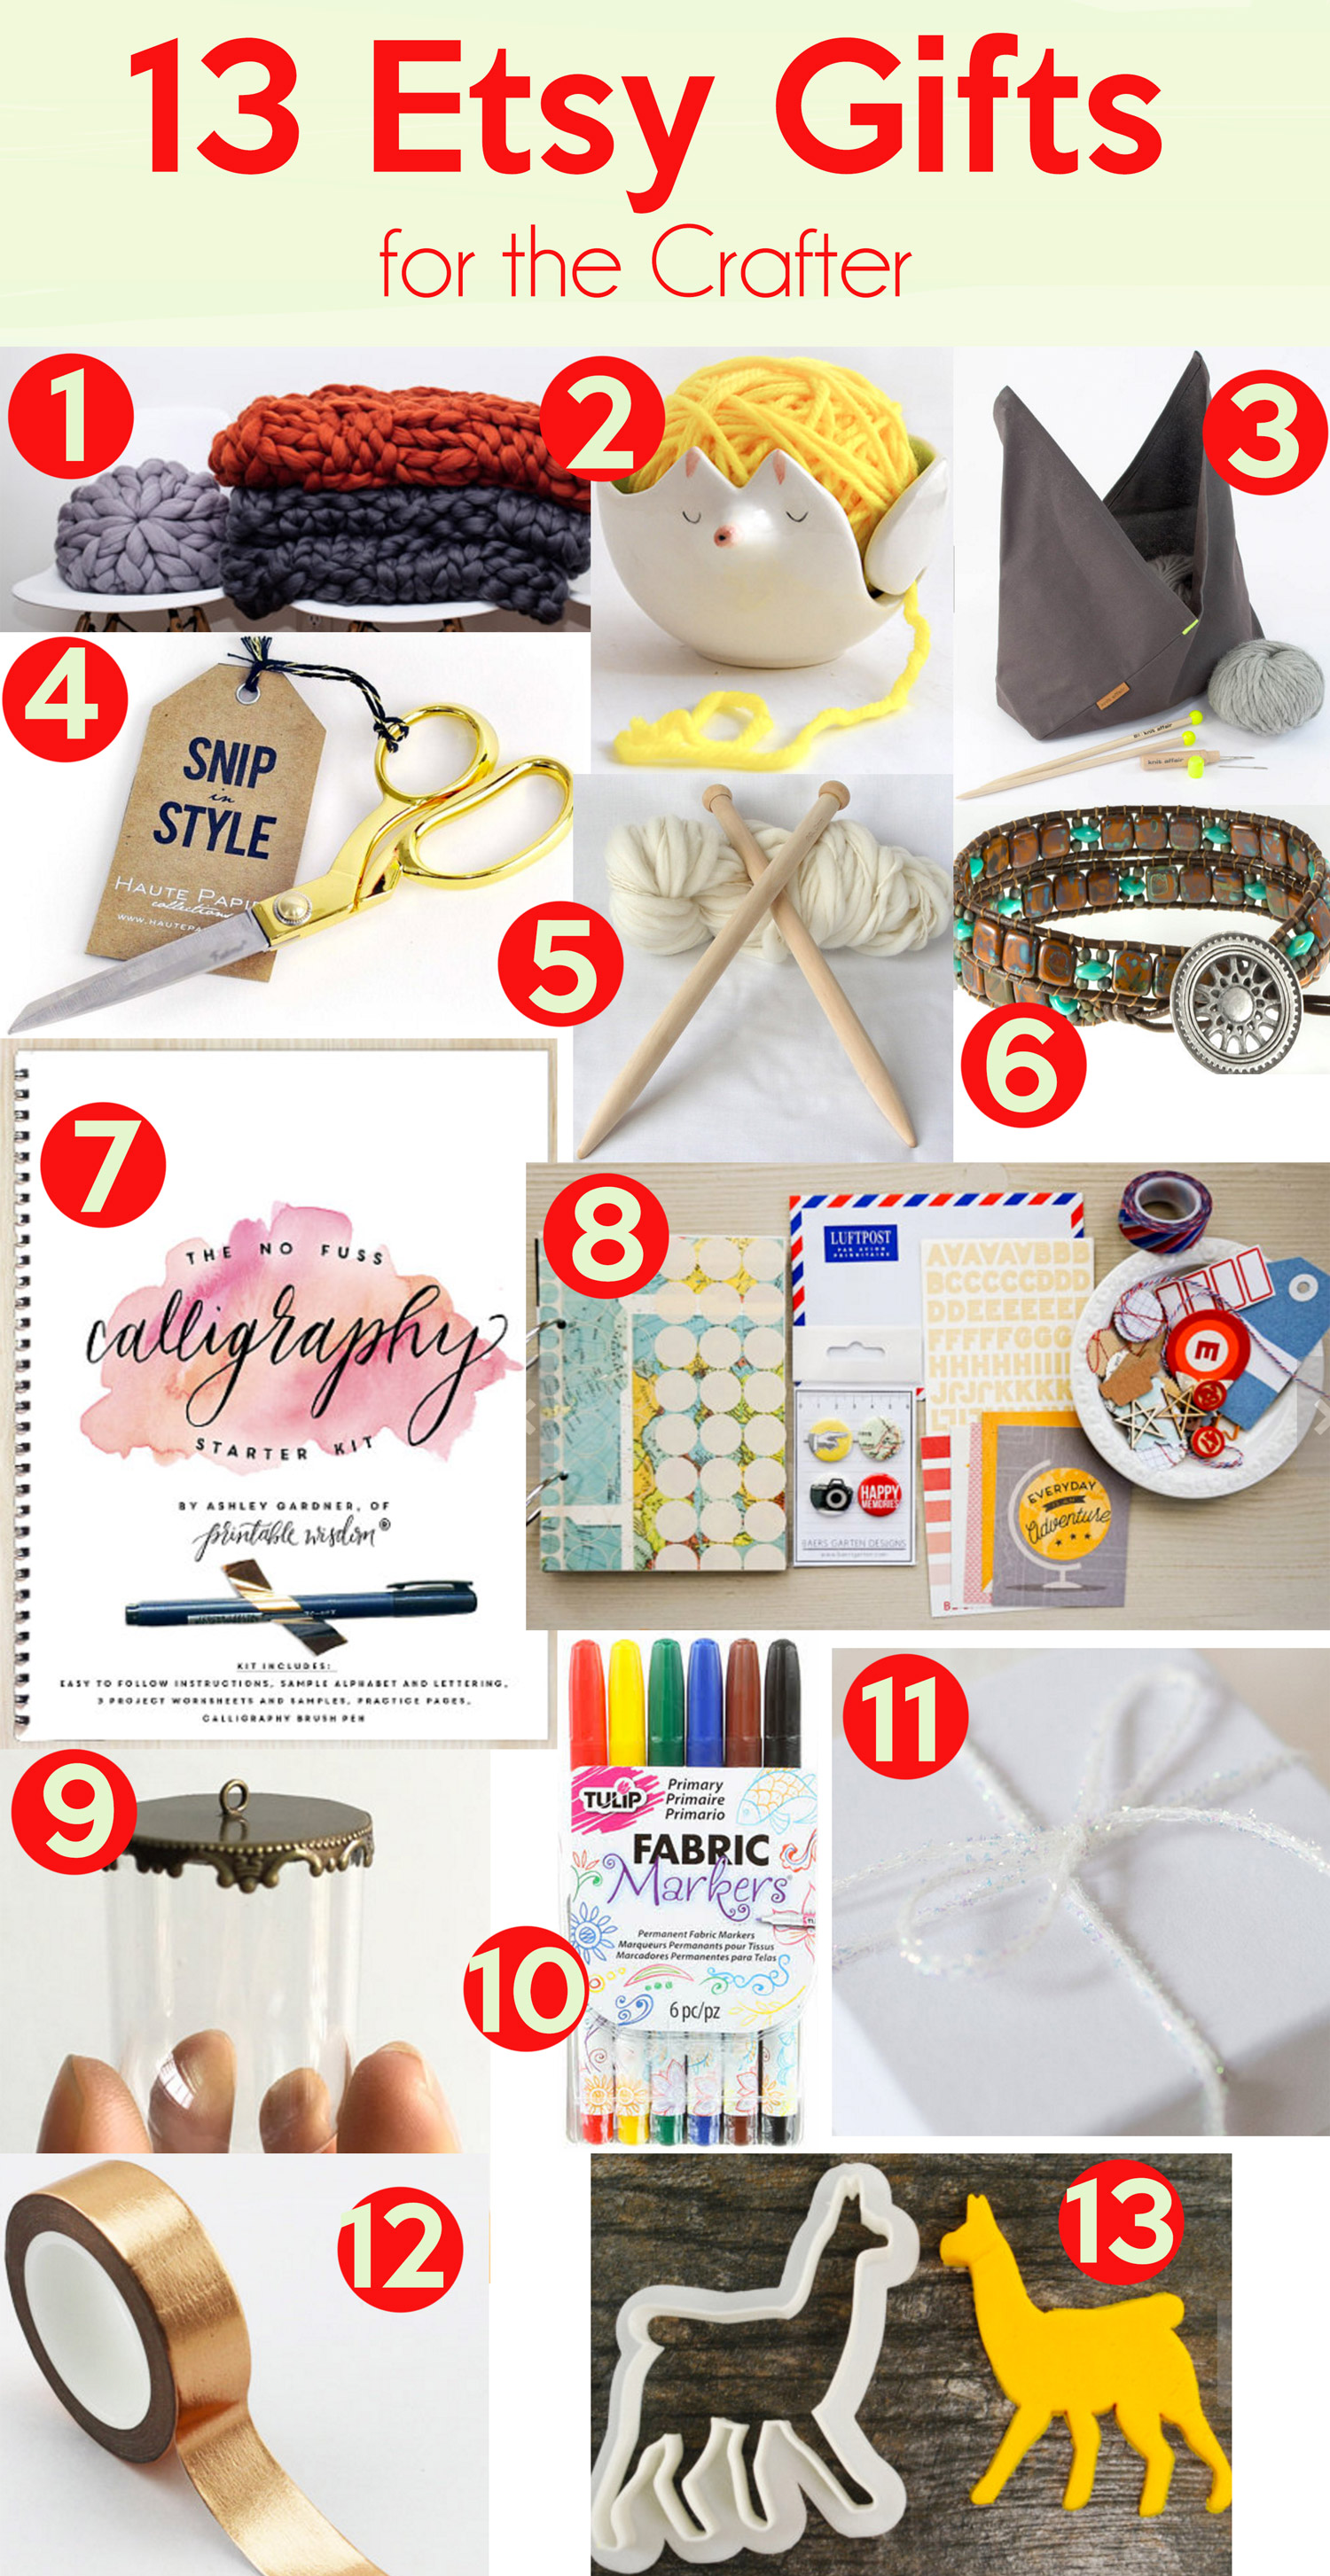 13 Etsy Gifts for the Crafters on your list